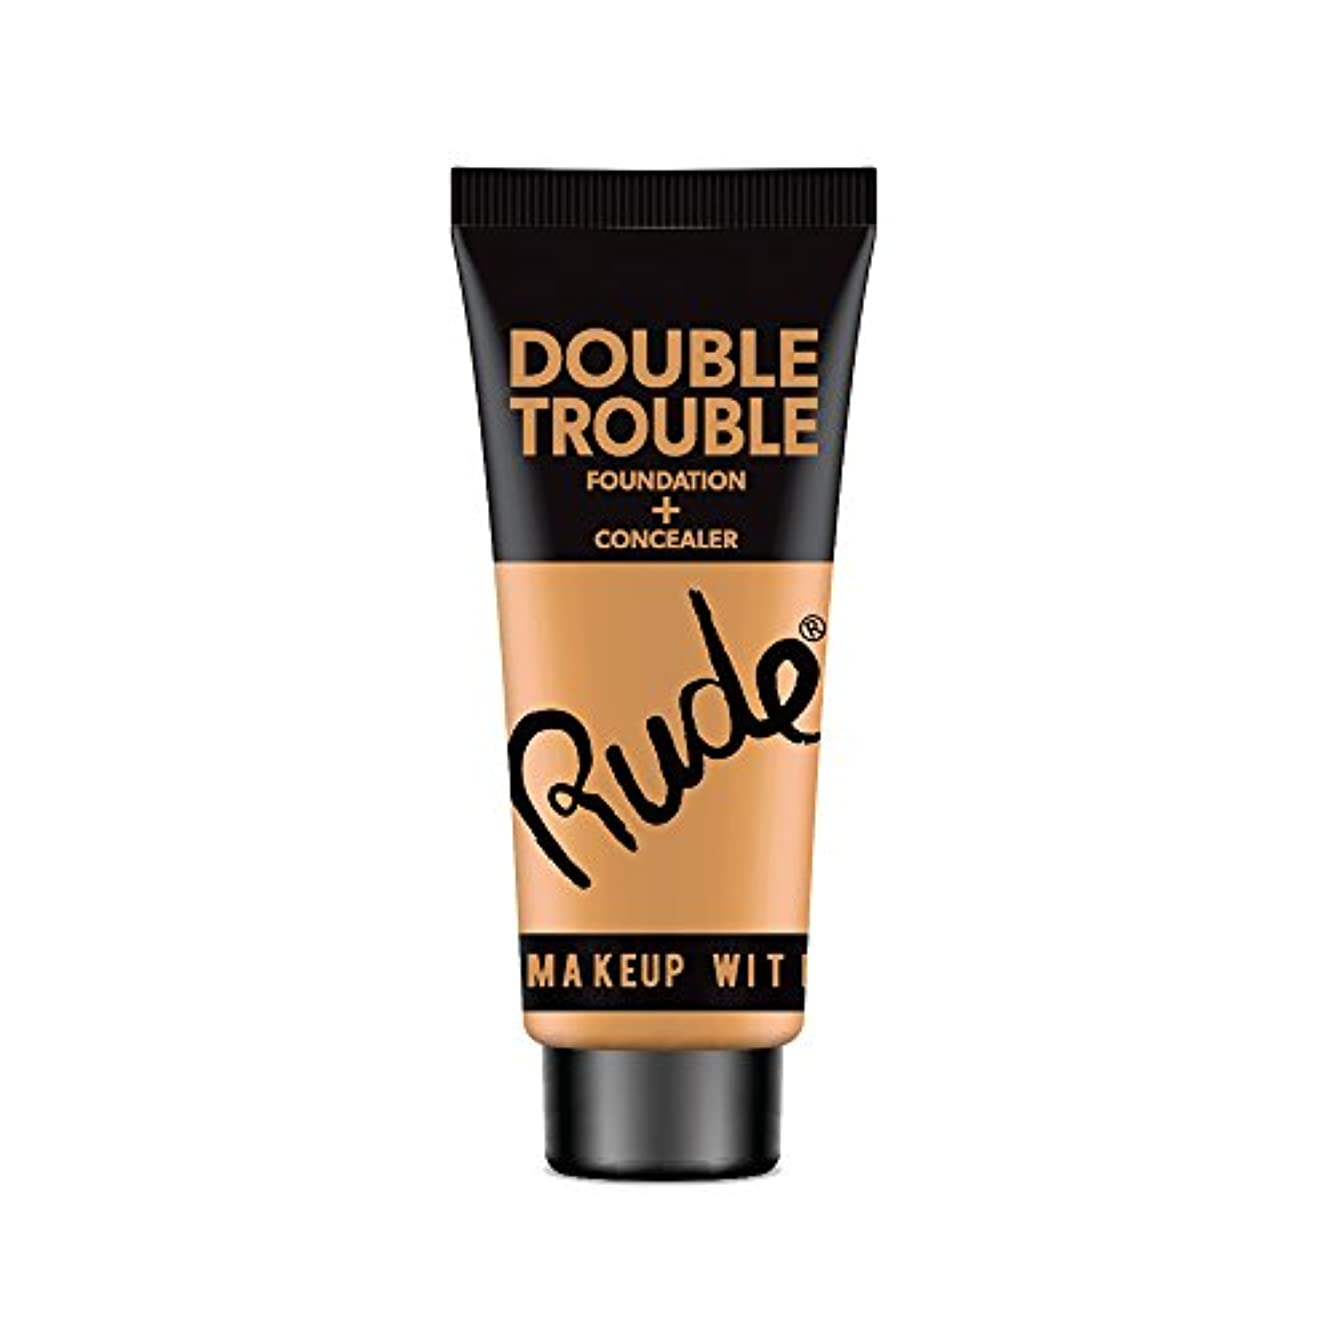 成長メンテナンスすごい(3 Pack) RUDE Double Trouble Foundation + Concealer - Warm Natural (並行輸入品)